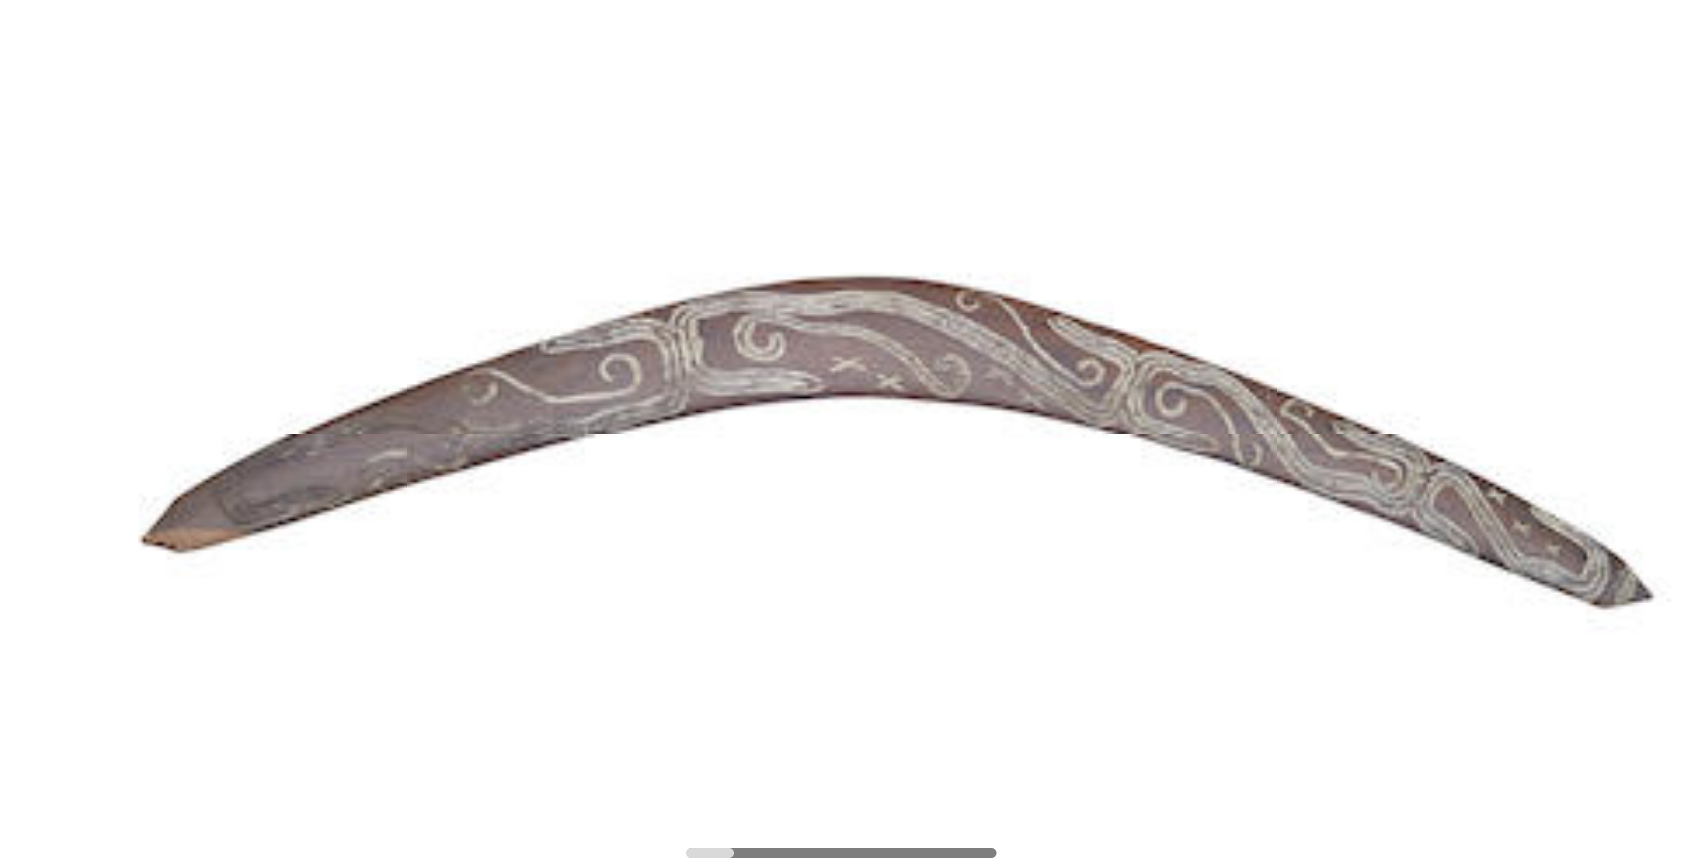 A Boomerang, South Western Queensland or Far Western New South Wales